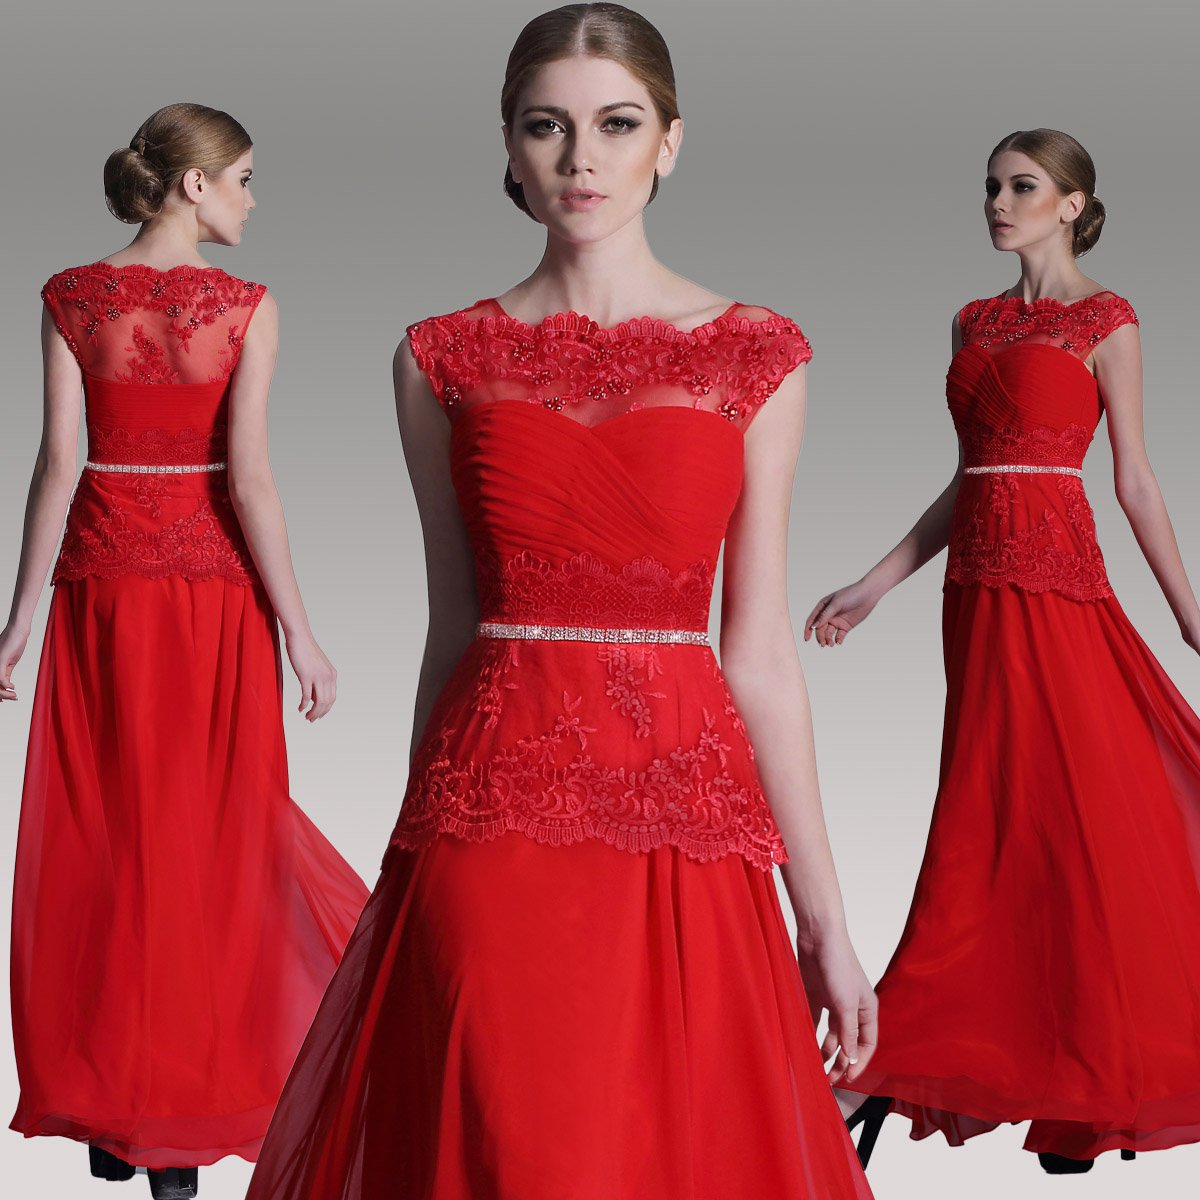 #F30979 - Red Lace Mother of Bride Special Occasion Gowns - x Fashion Ltd